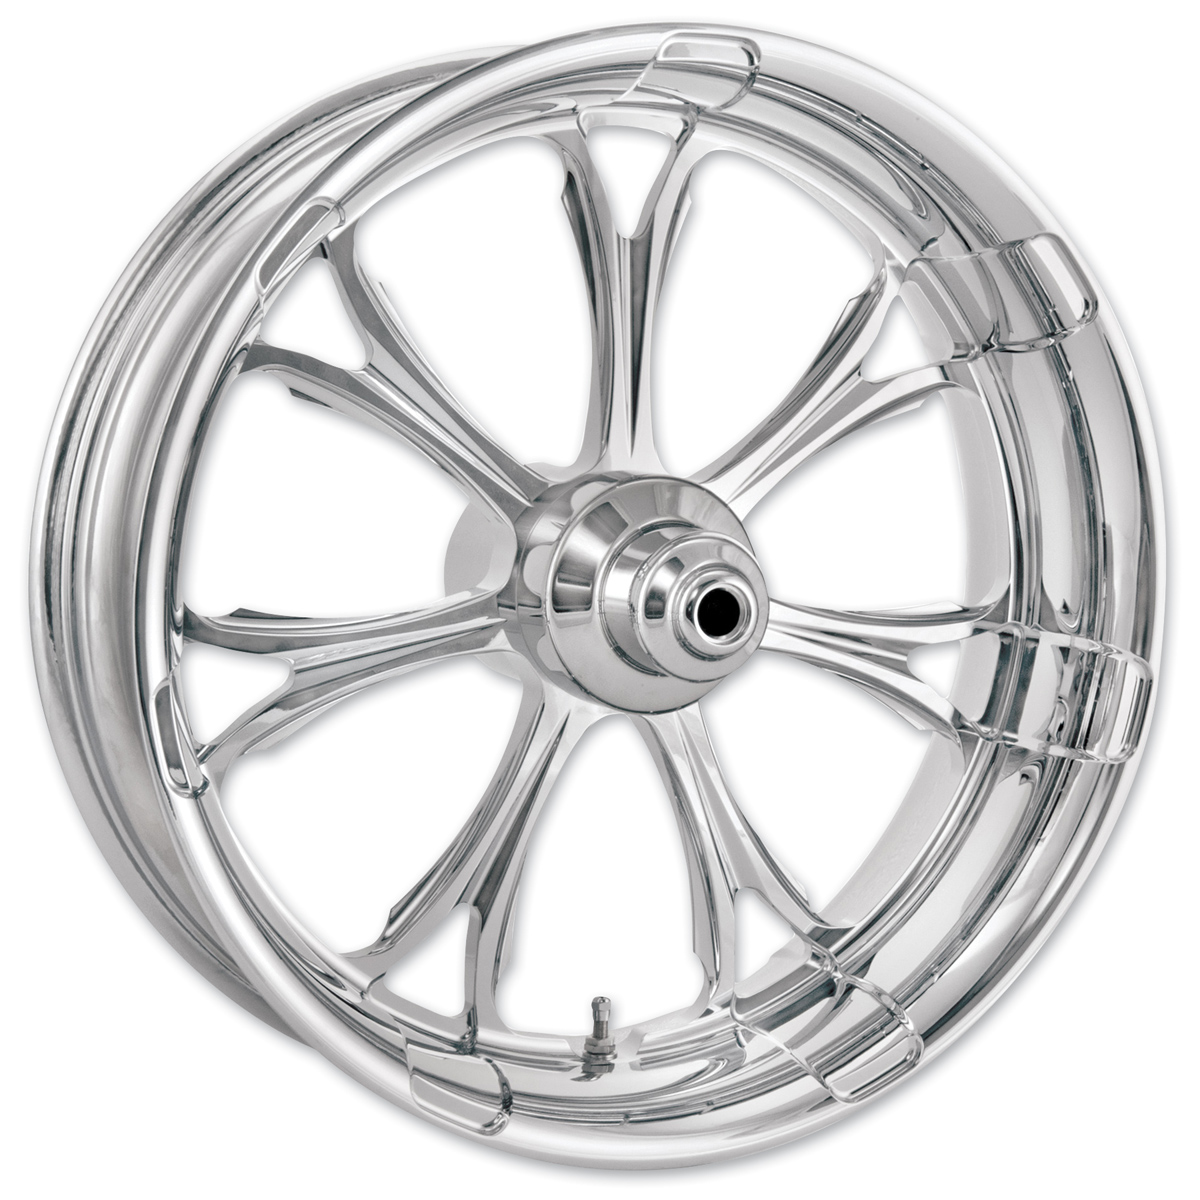 Performance Machine Paramount Chrome Front Wheel 21x3.5 Non-ABS